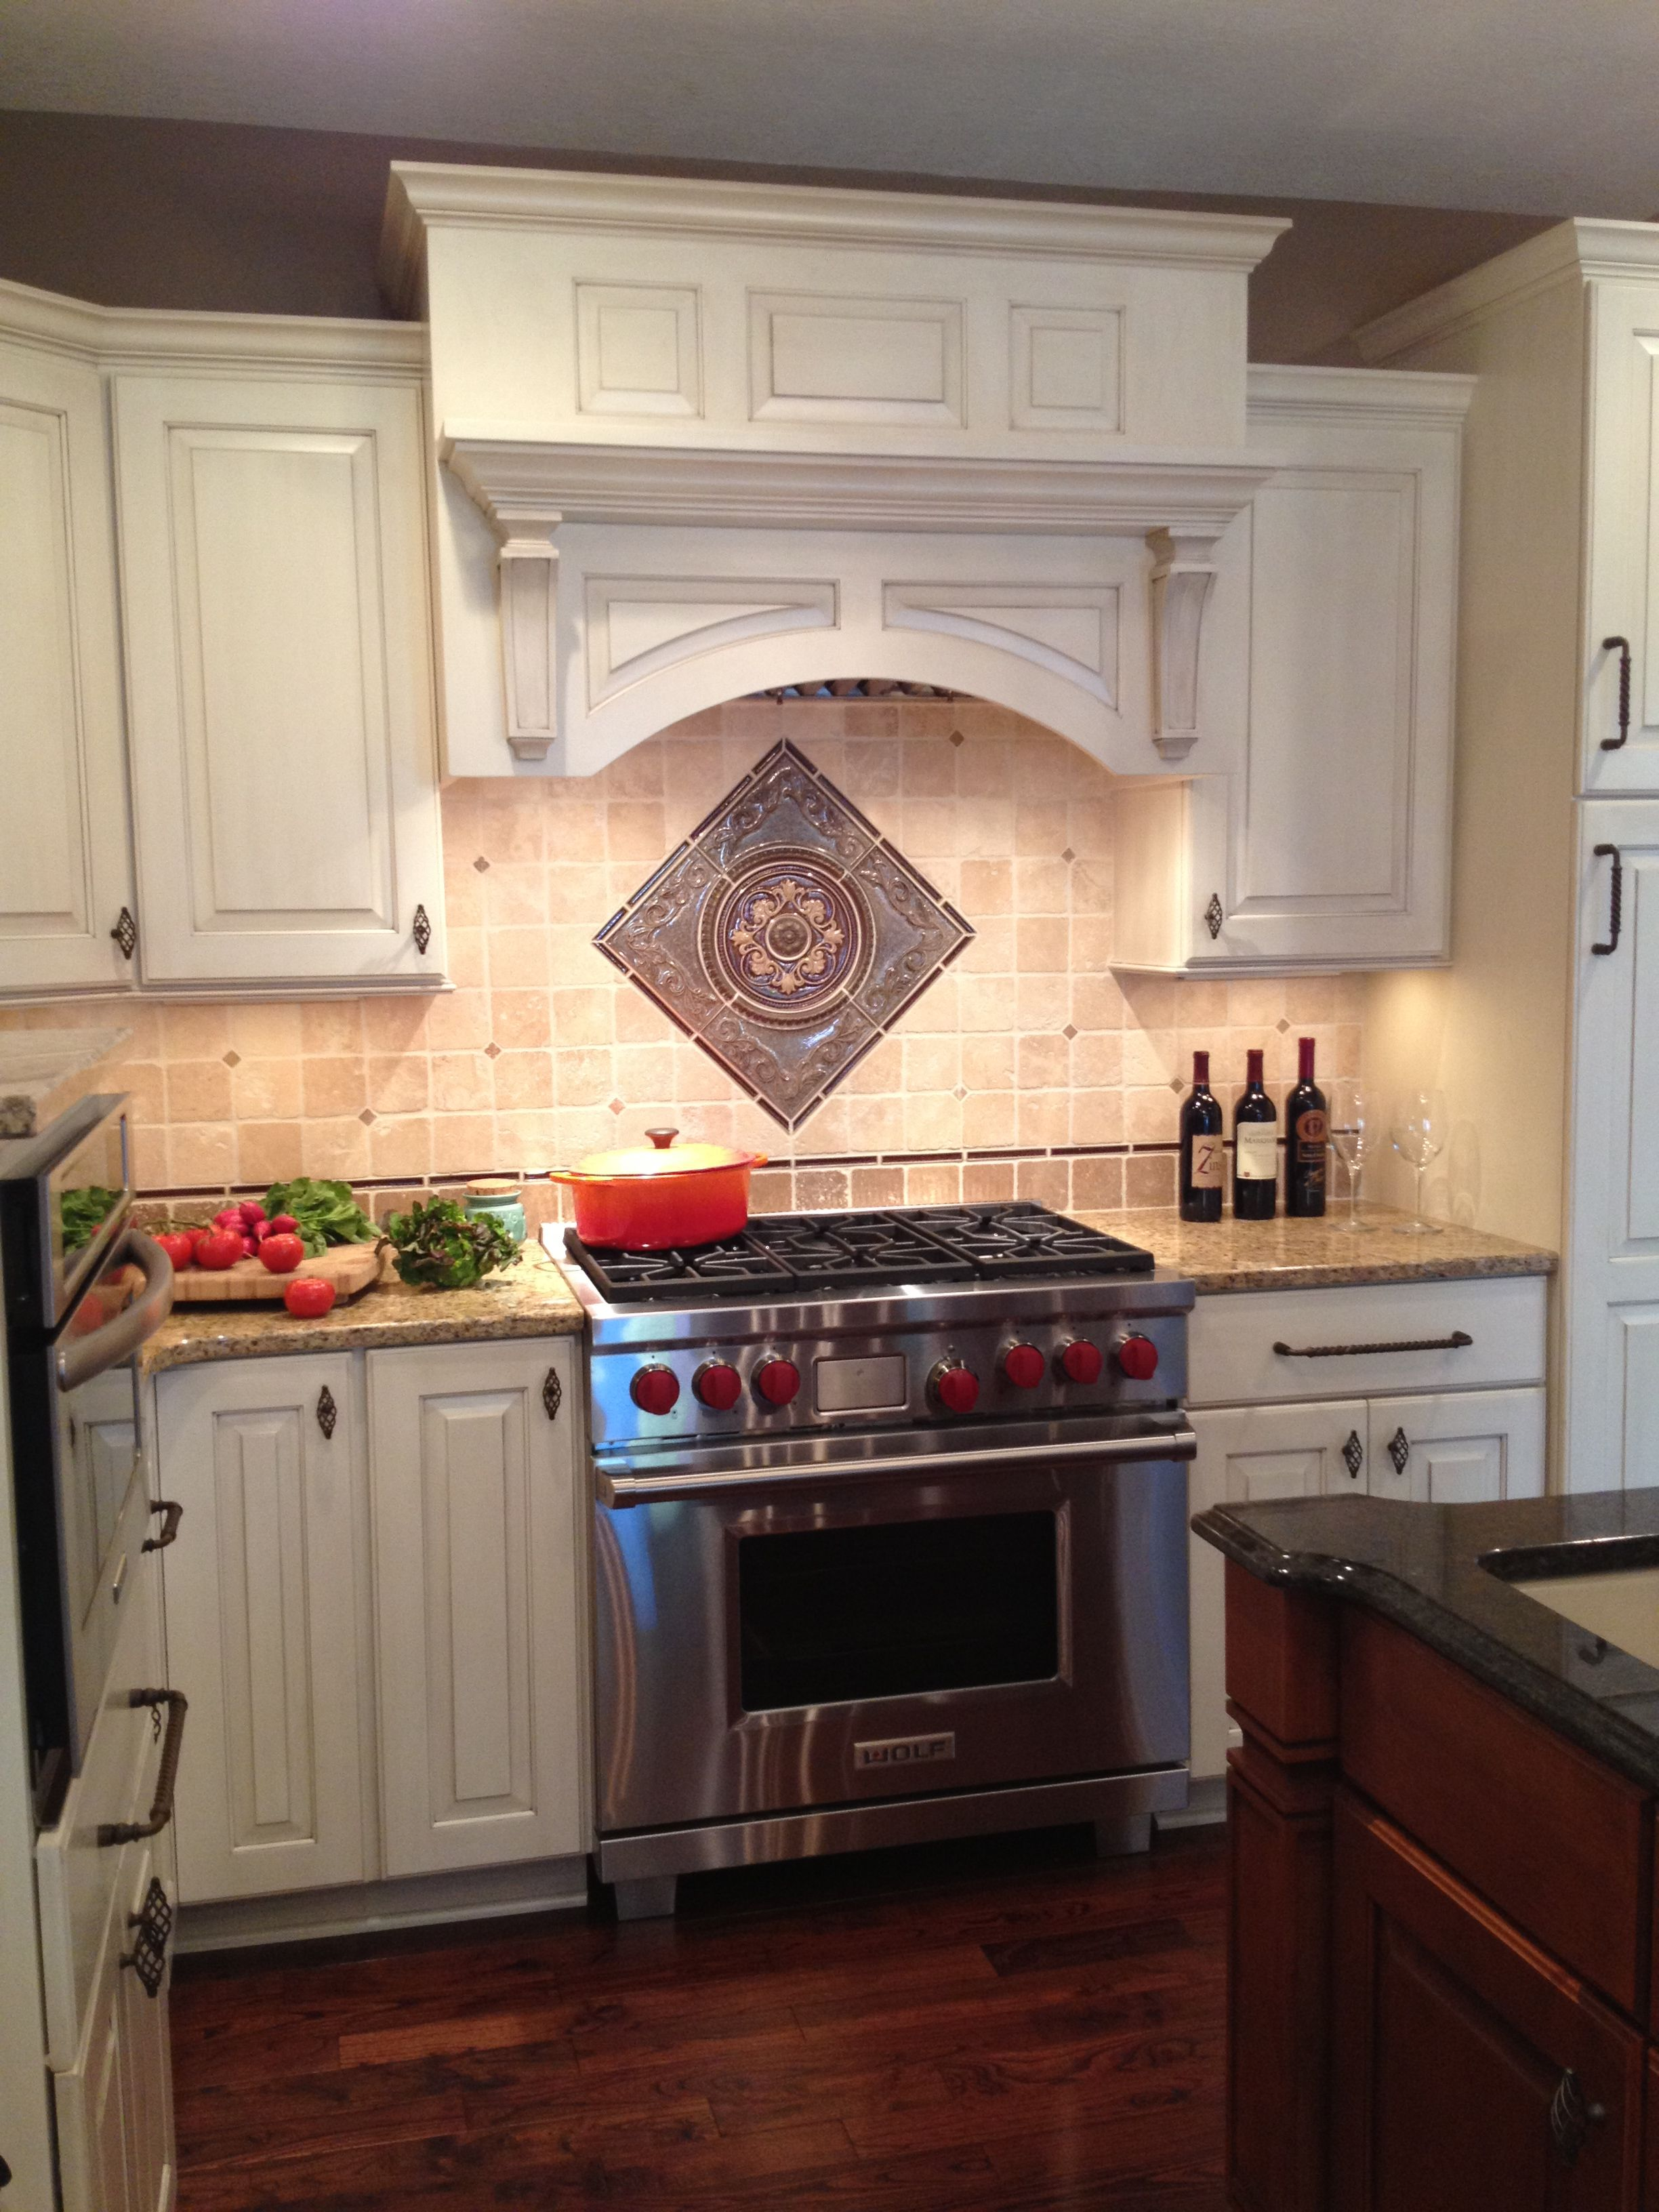 Powell Ohio Kitchen Remodel Features A Tumbled Stone Backsplash With Sonoma Tilemakers Medallion And Deco Stripe